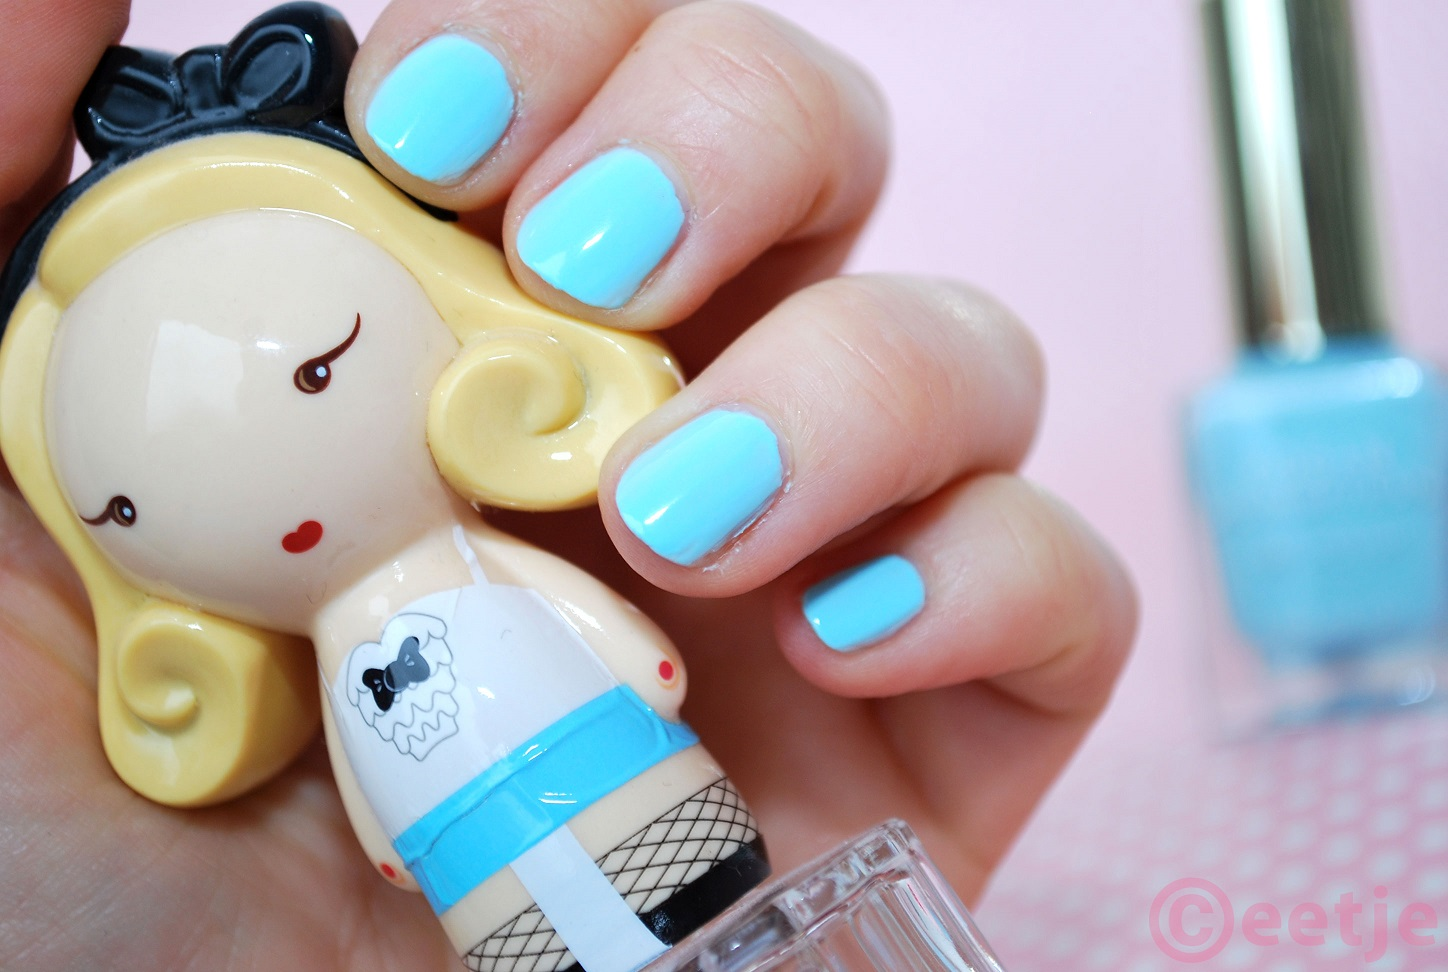 Fogan cosmetics nailpolish 10 baby blue review